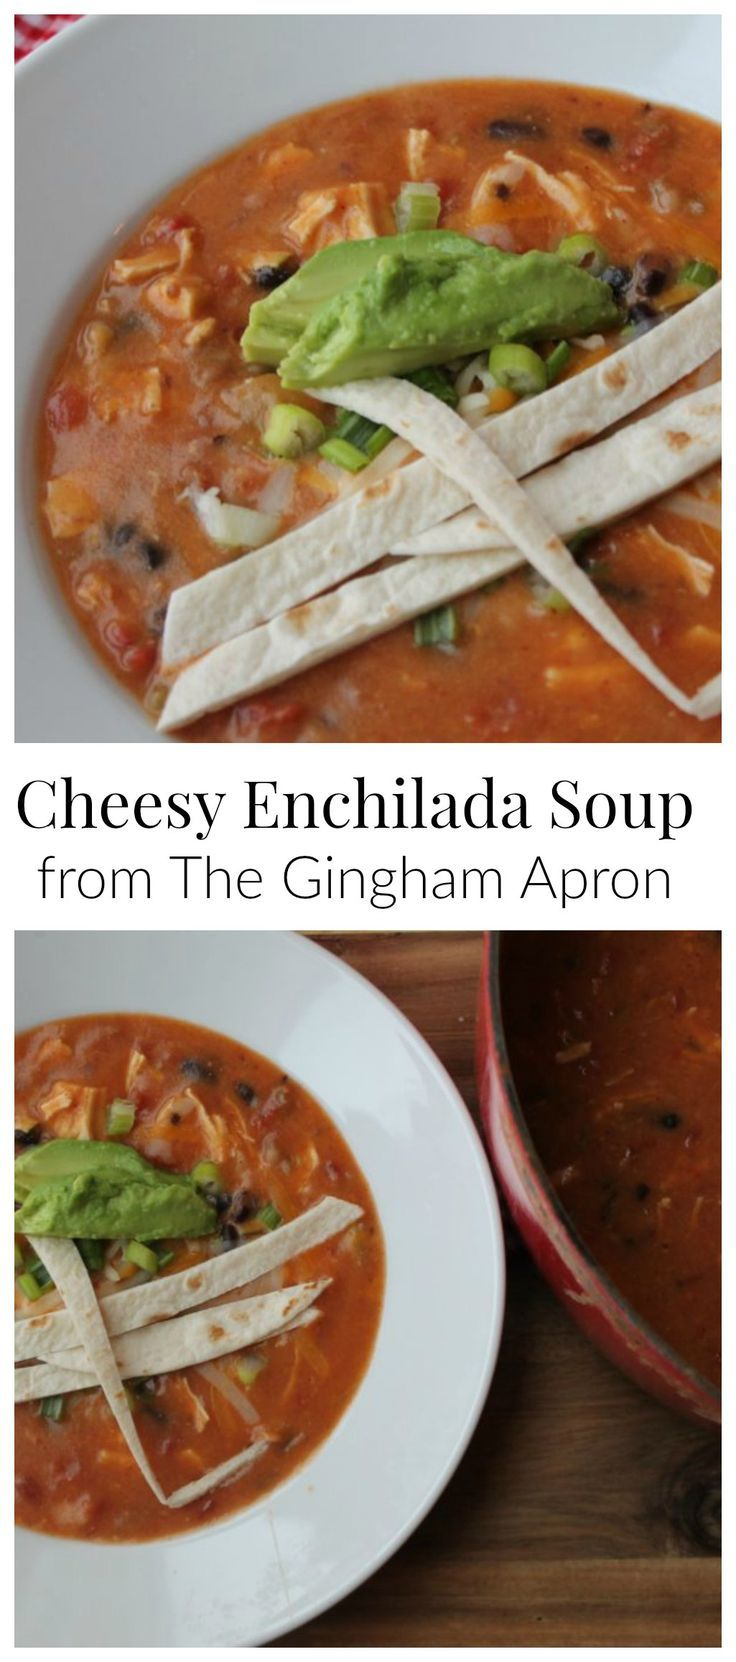 Cheesy Enchilada Soup- shredded chicken, black beans, enchilada sauce, and cumin make this soup SO delicious! #soups #Mexican #enchiladas